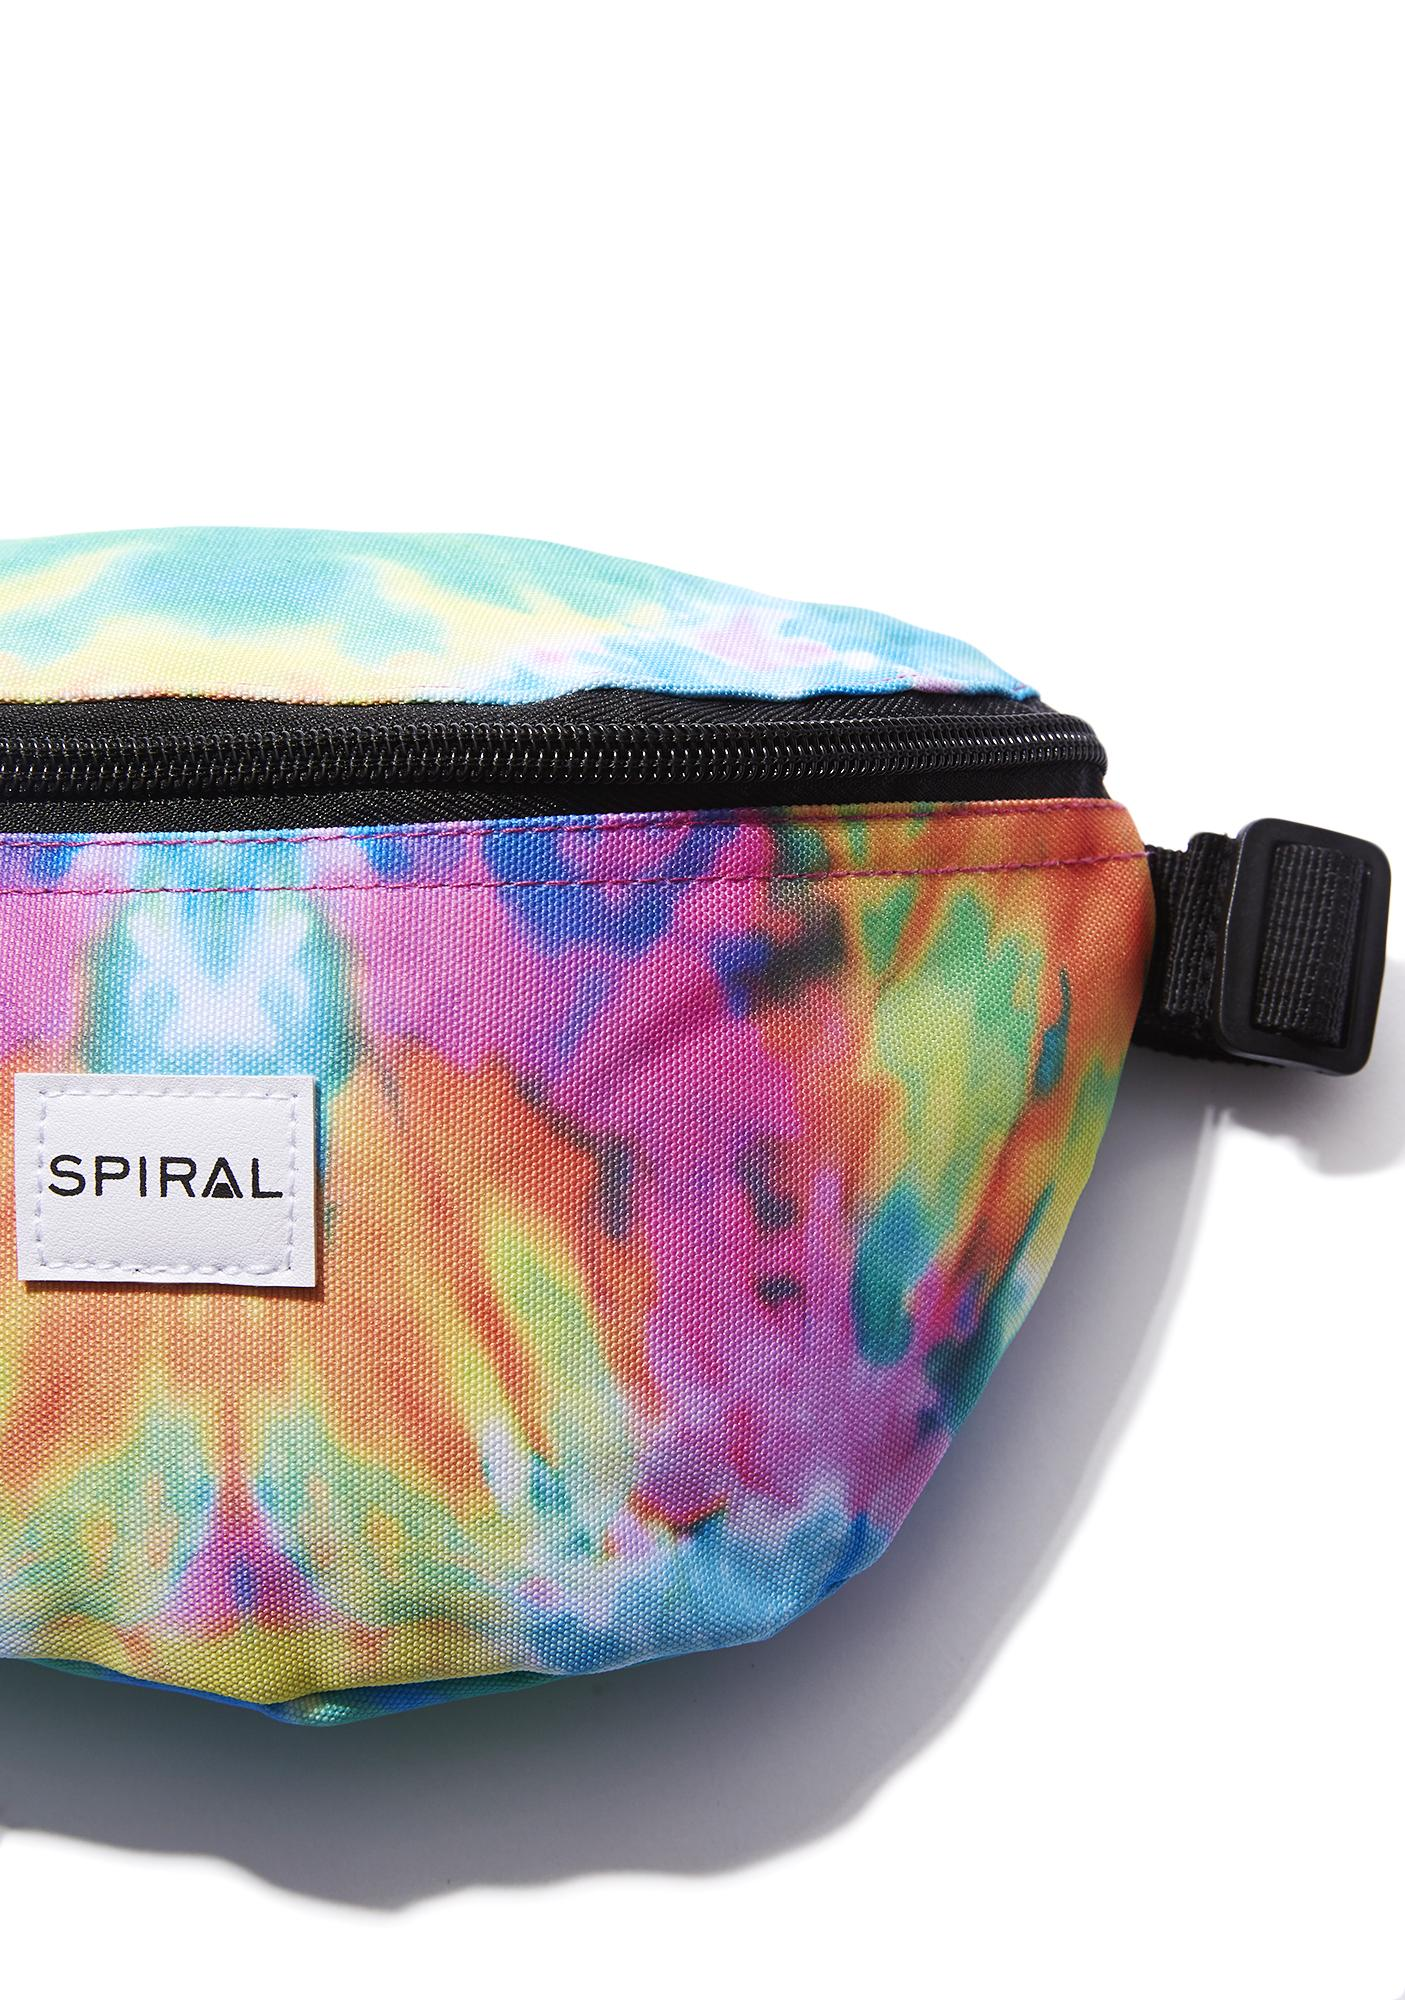 Spiral UK Trance Harvard Bum Bag